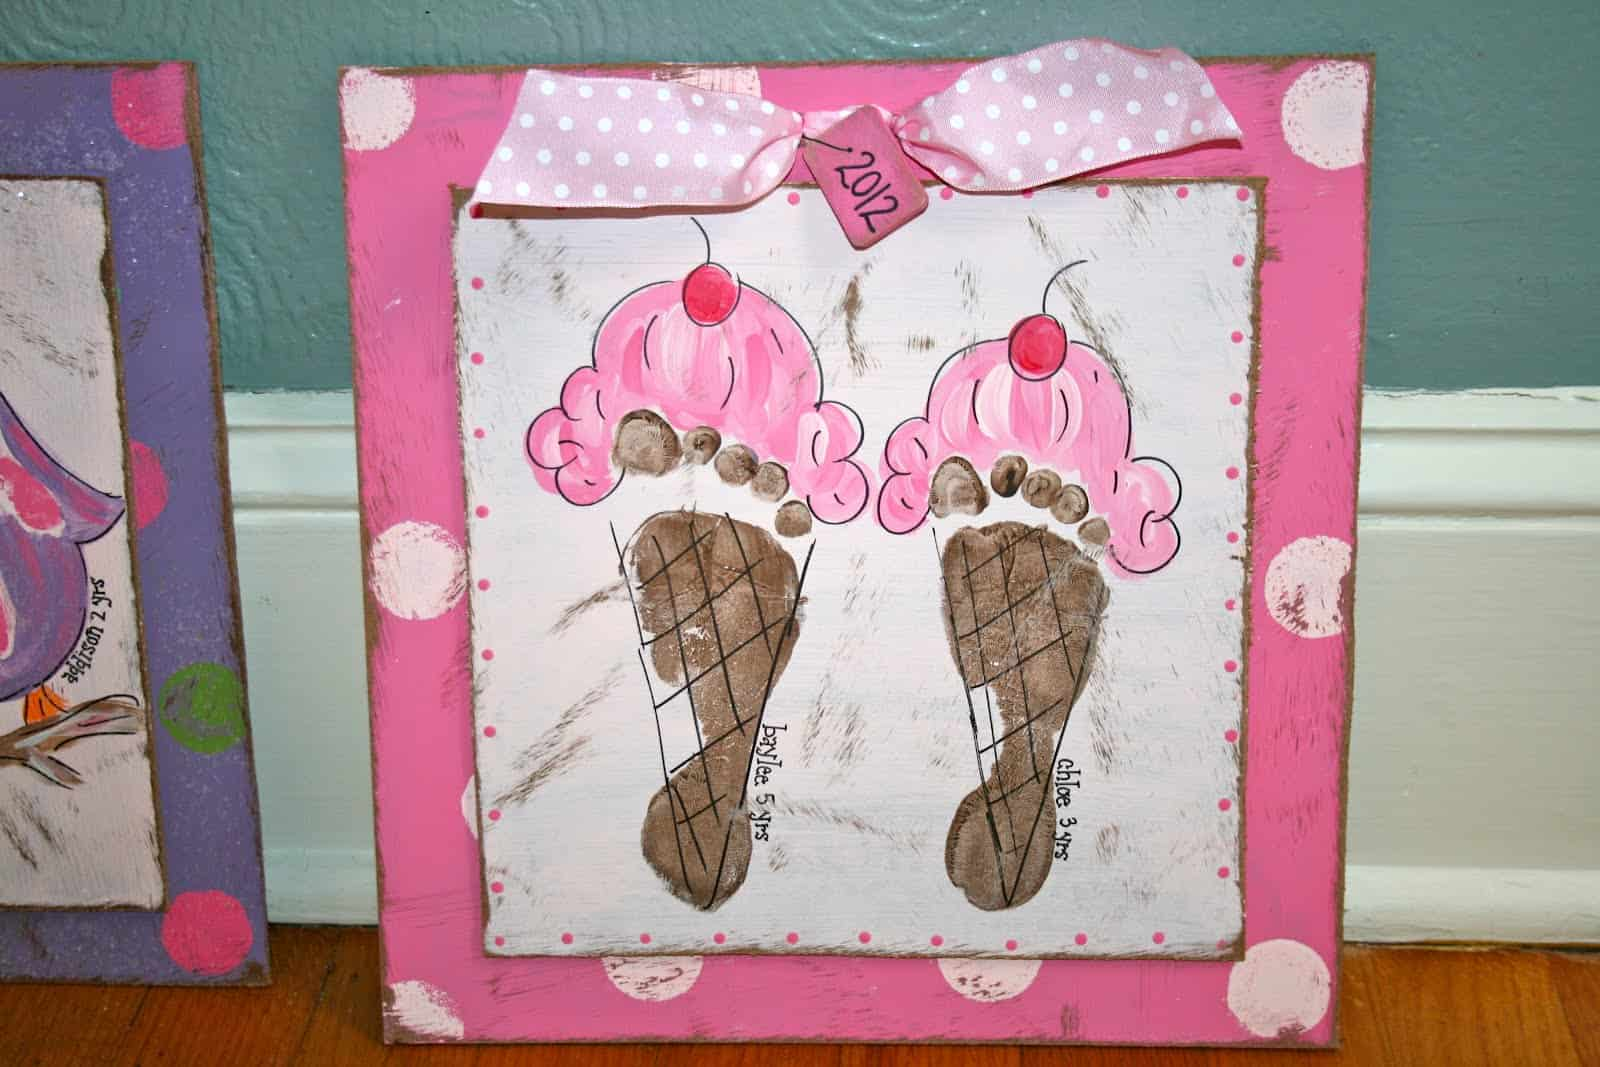 Footprint ice cream cone wall art